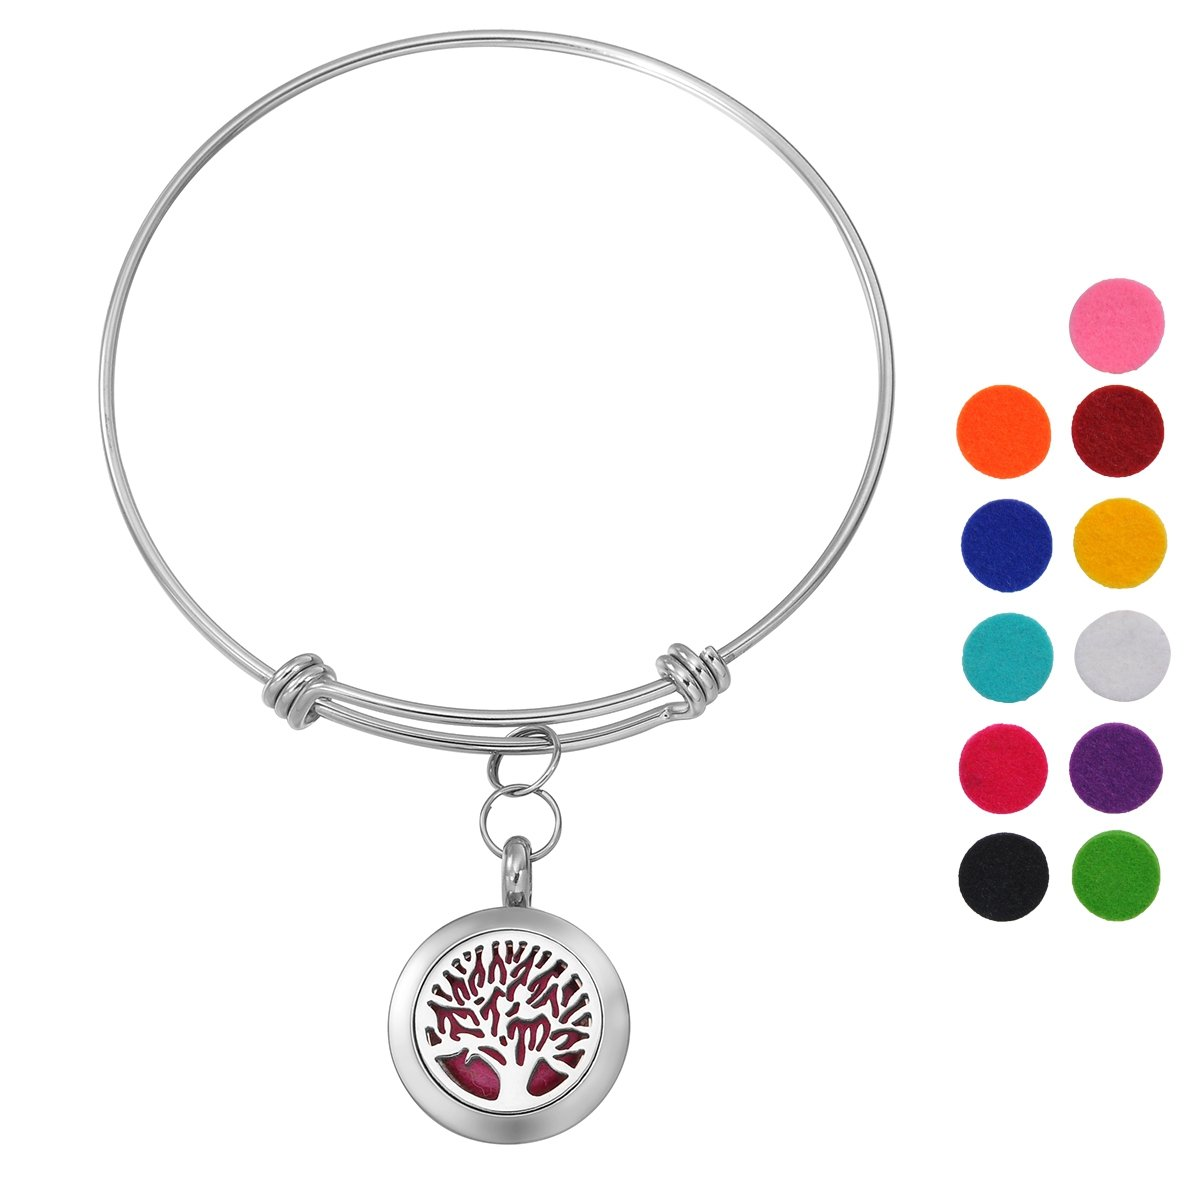 Stainless Steel Aromatherapy Essential Oil Diffuser Bracelet with Pierced, Silver Tone Supreme glory Necklace1011A72